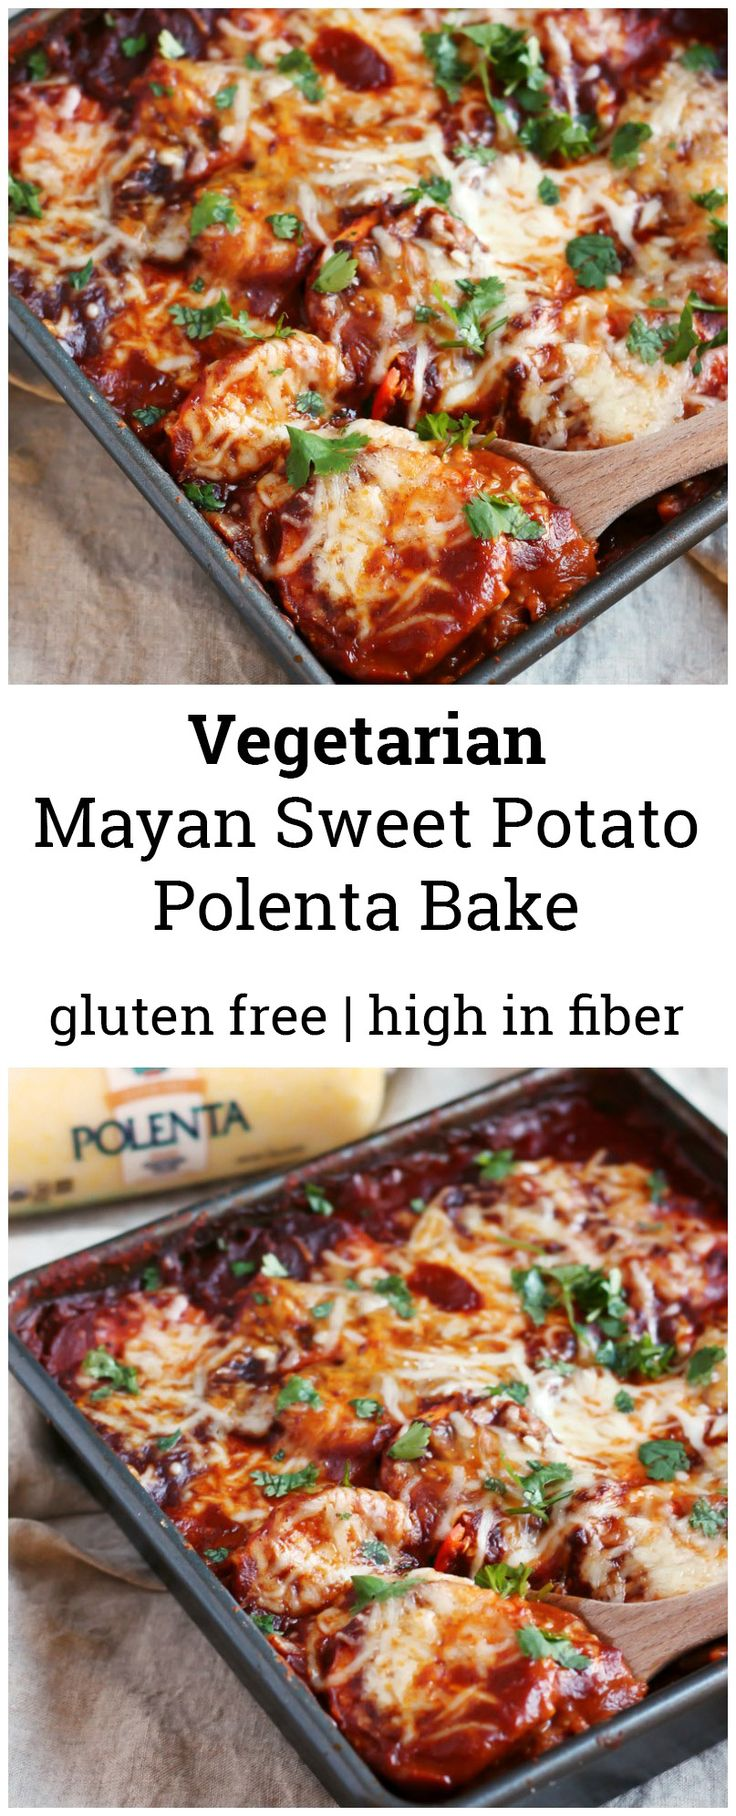 A recipe for my Mom's vegetarian Mayan polenta bake with layers of sweet potato, refried beans, polenta, red chile sauce and cheese. So delicious, filling and FULL OF FLAVOR!